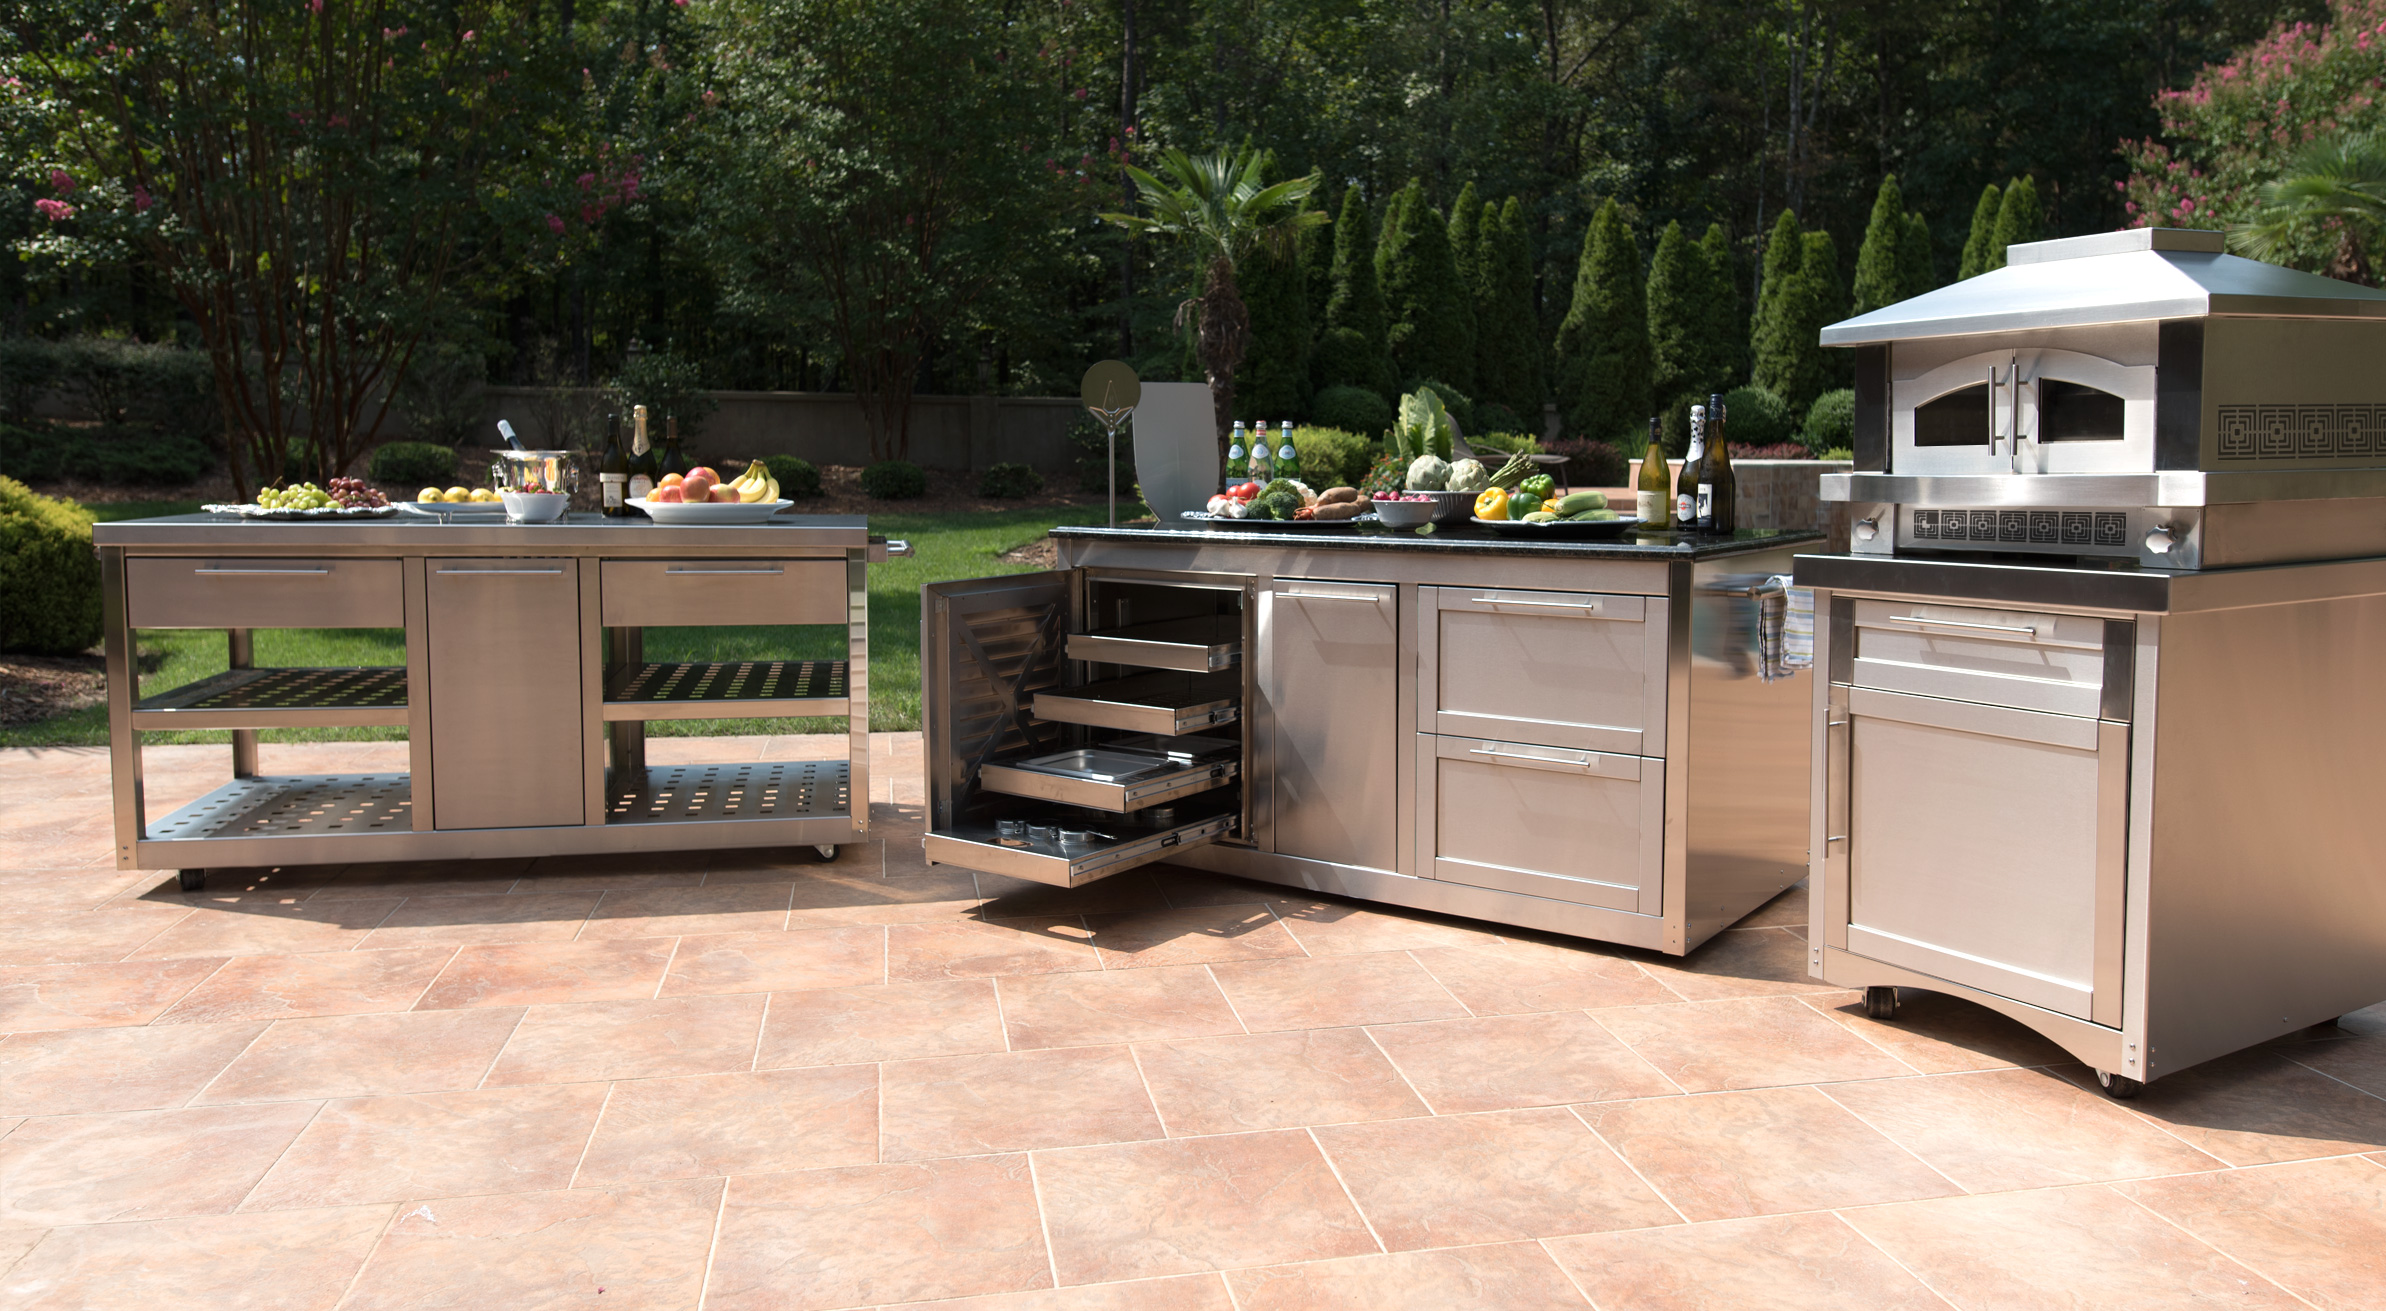 find your spot temporary or permanent and let the cart feet down lets get the party started with the best stainless steel outdoor kitchen cabinets - Outdoor Kitchen Cabinets